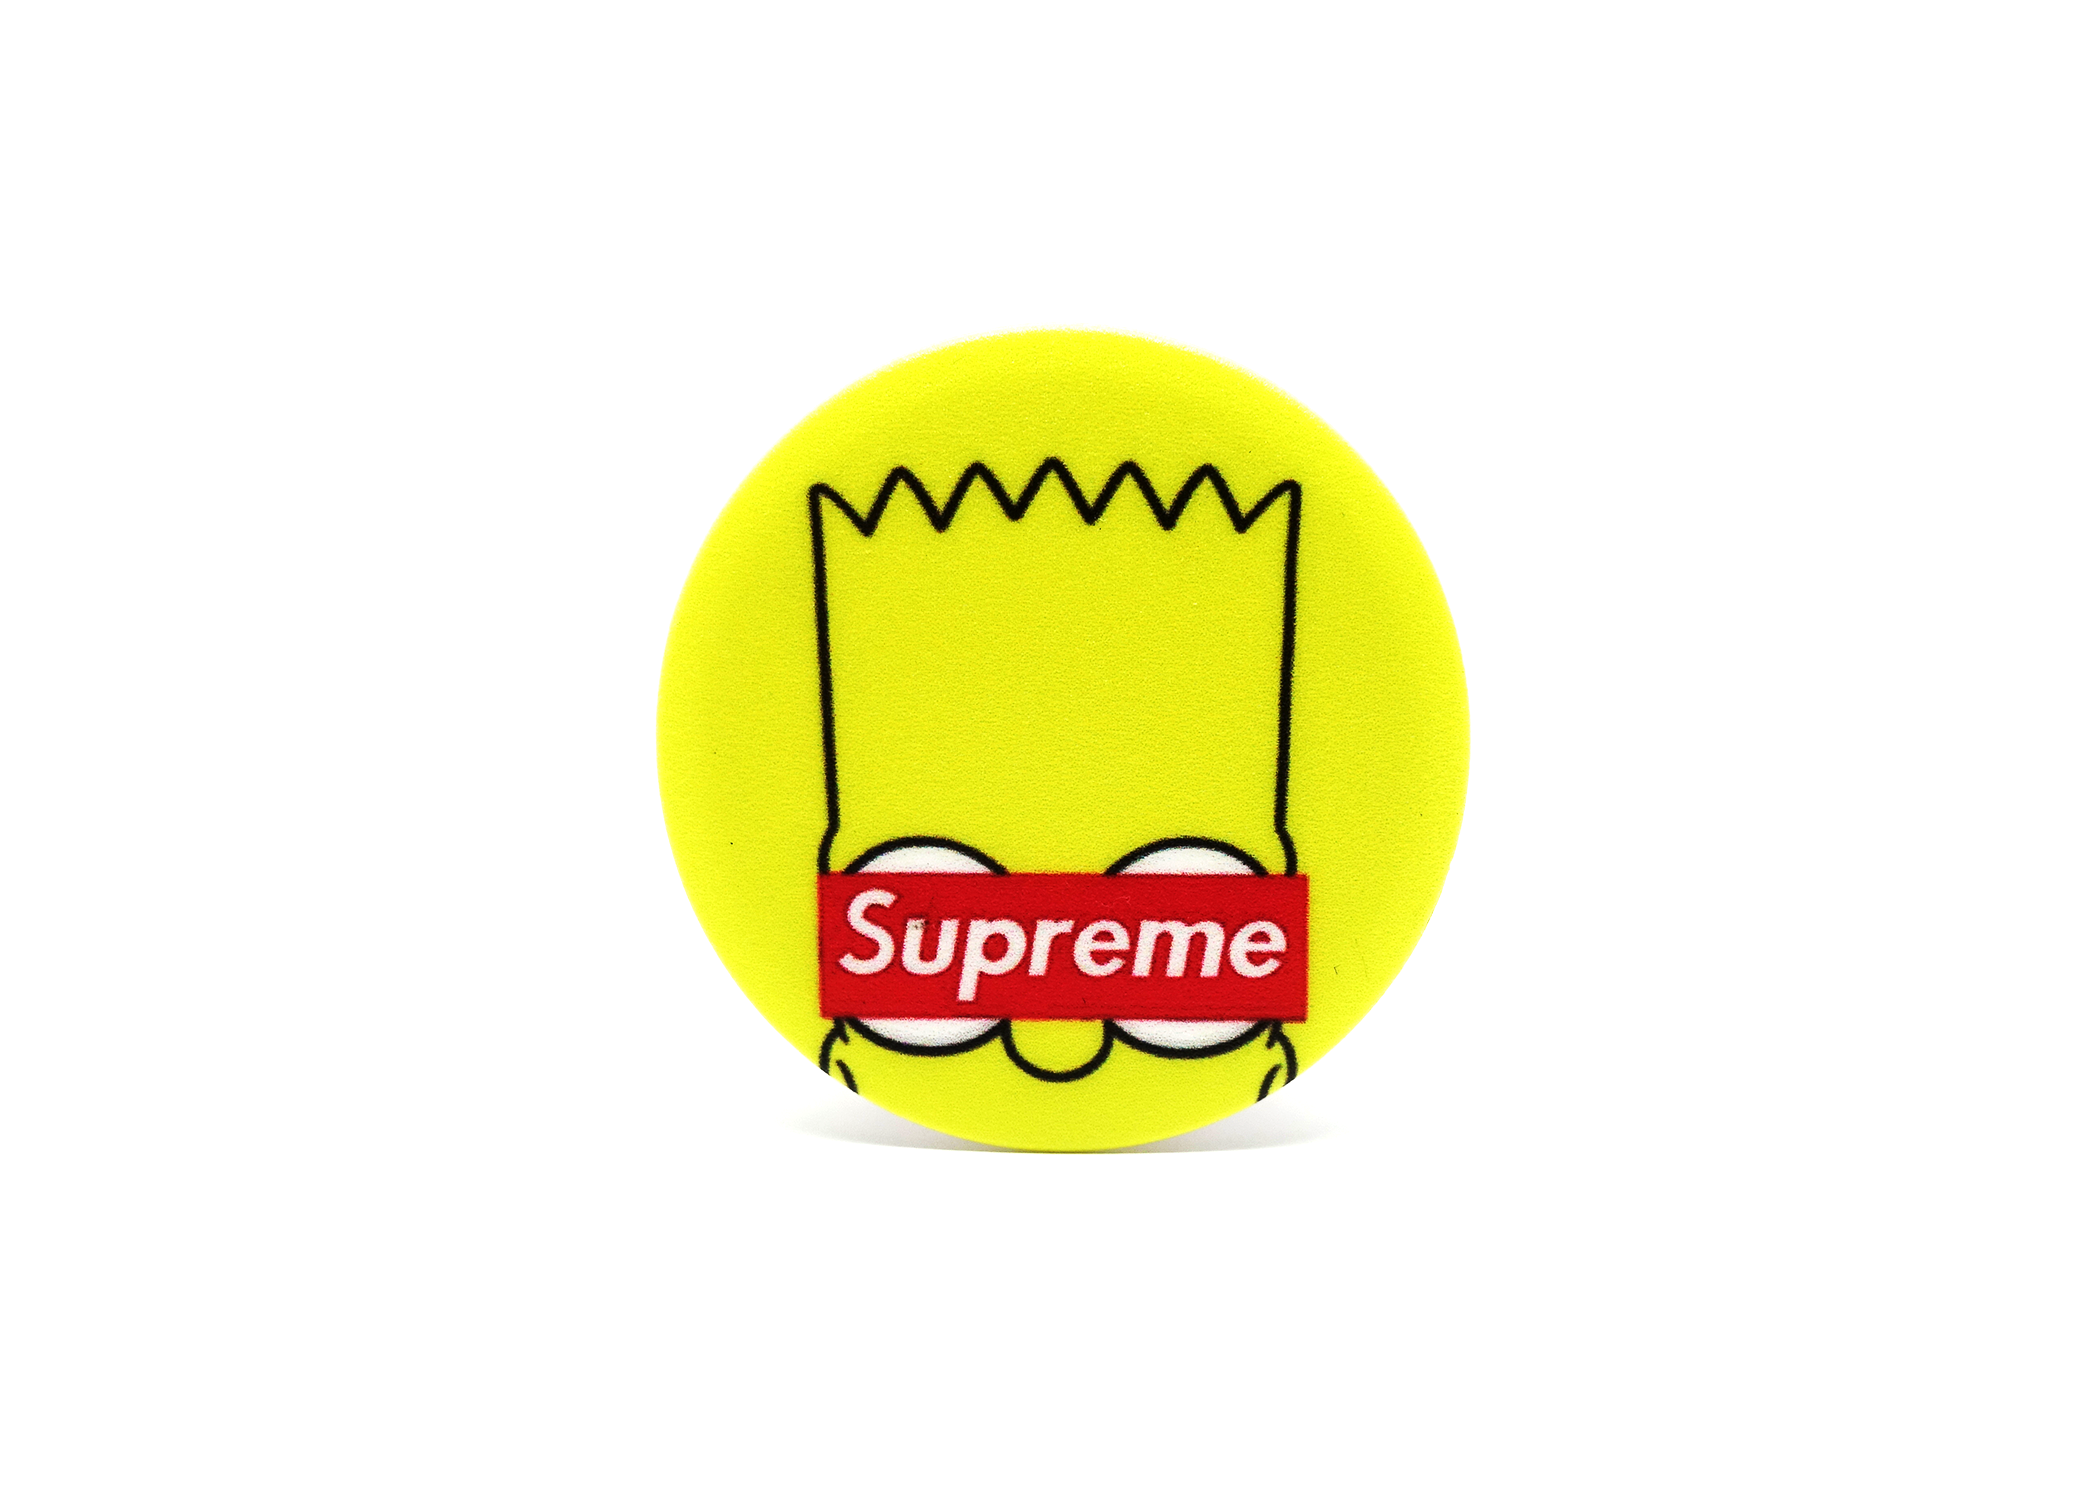 f3a4bb2fe  CellPhoneAccessory  phonestand  Accessory  Grip  iPhone  android   iphonestand  bart  simpsons  supreme  red  yellow  funny  phone